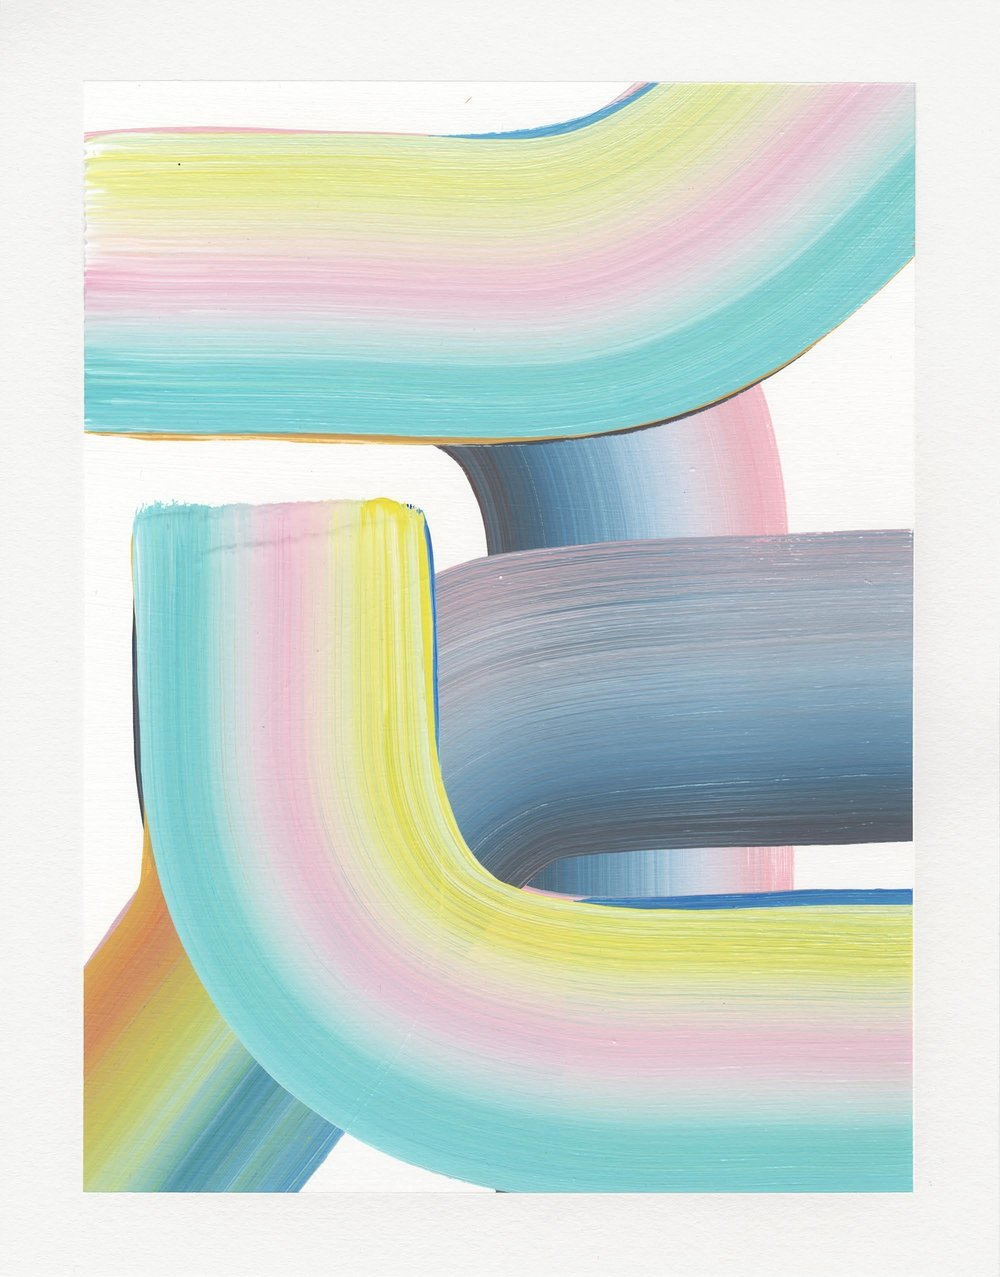 Acrylic Gradient Series,  2017  Acrylic on paper  14H x 11W inches